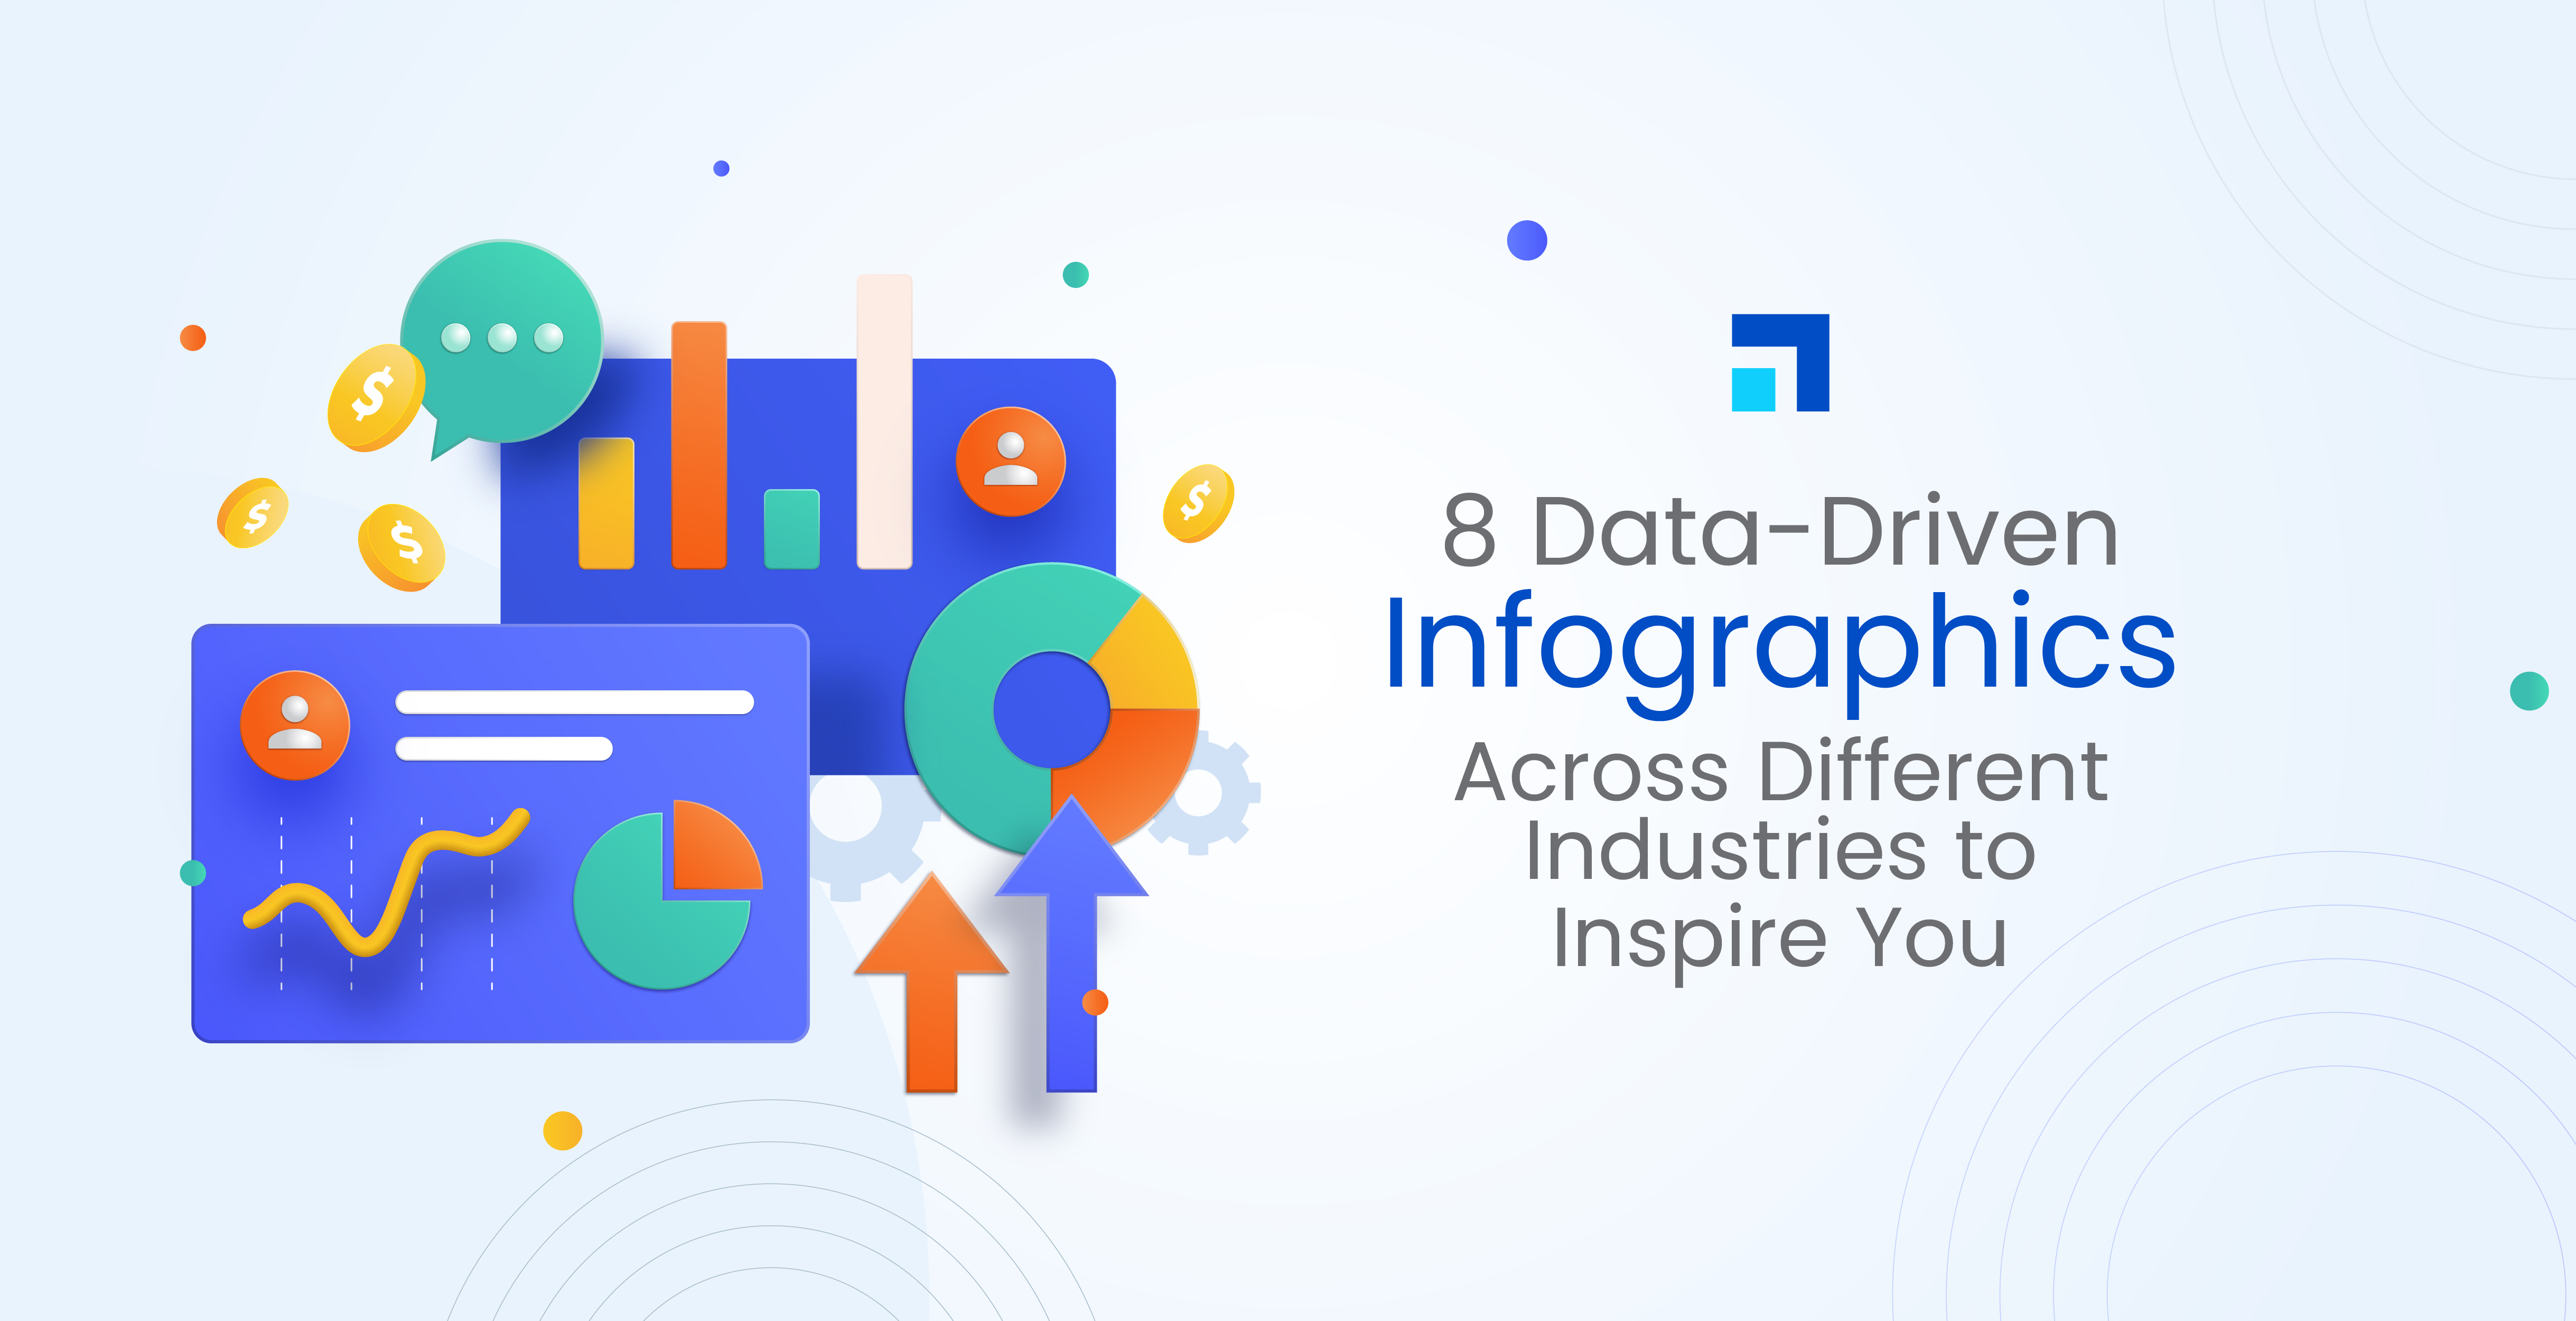 8 Data-Driven Infographics Across Different Industries to Inspire You